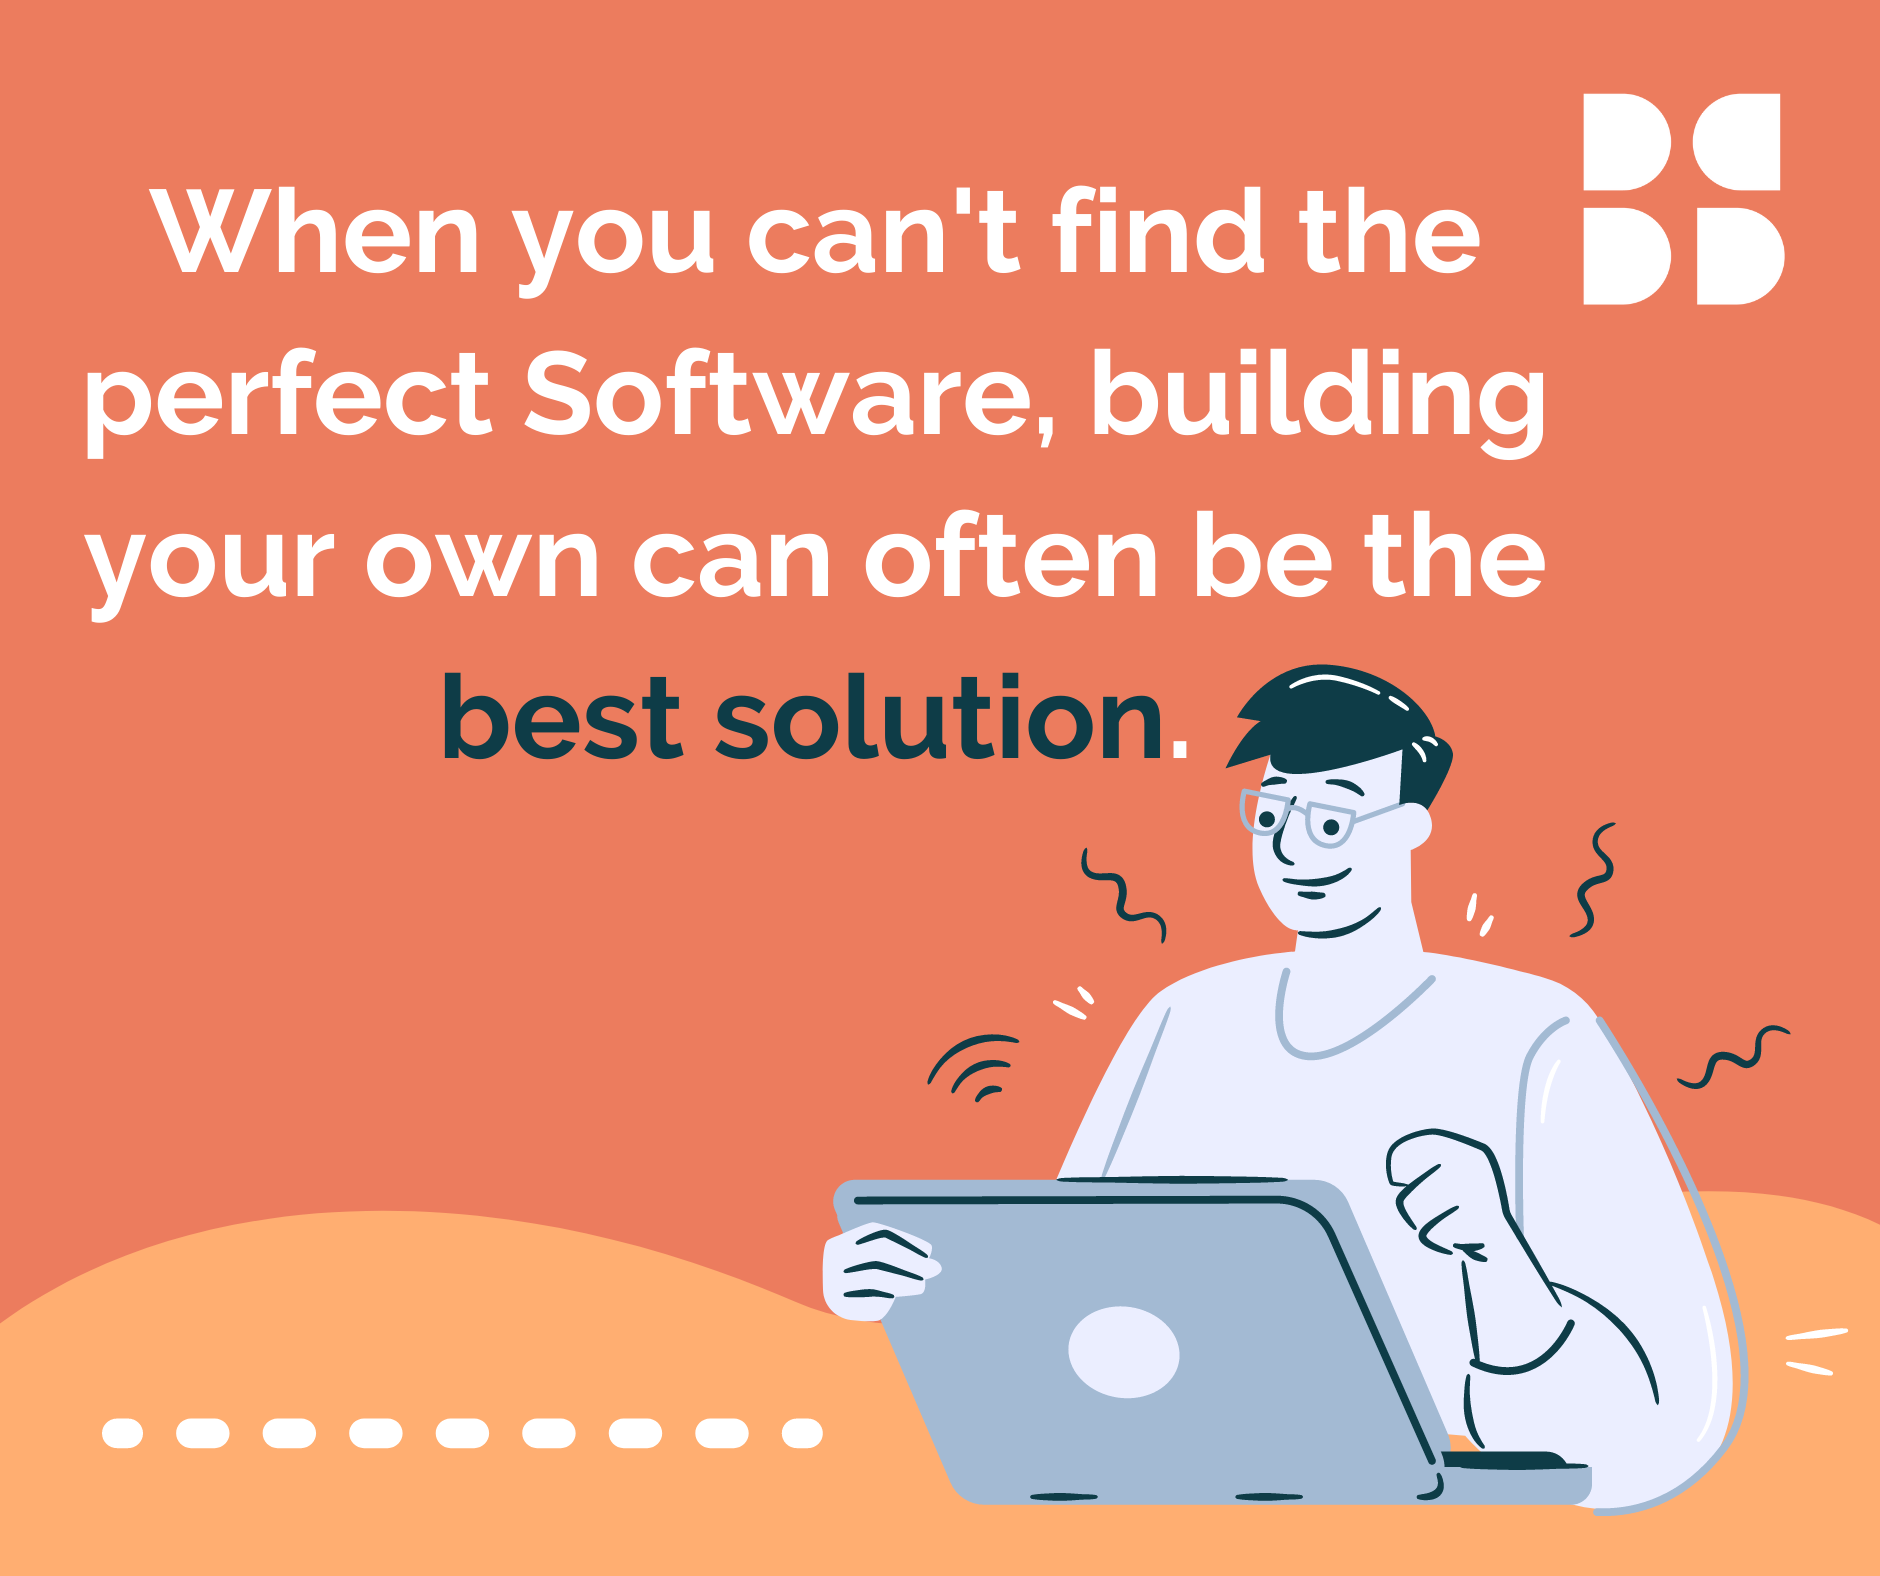 When you can't find the perfect Software, building your own can often be the best Solution